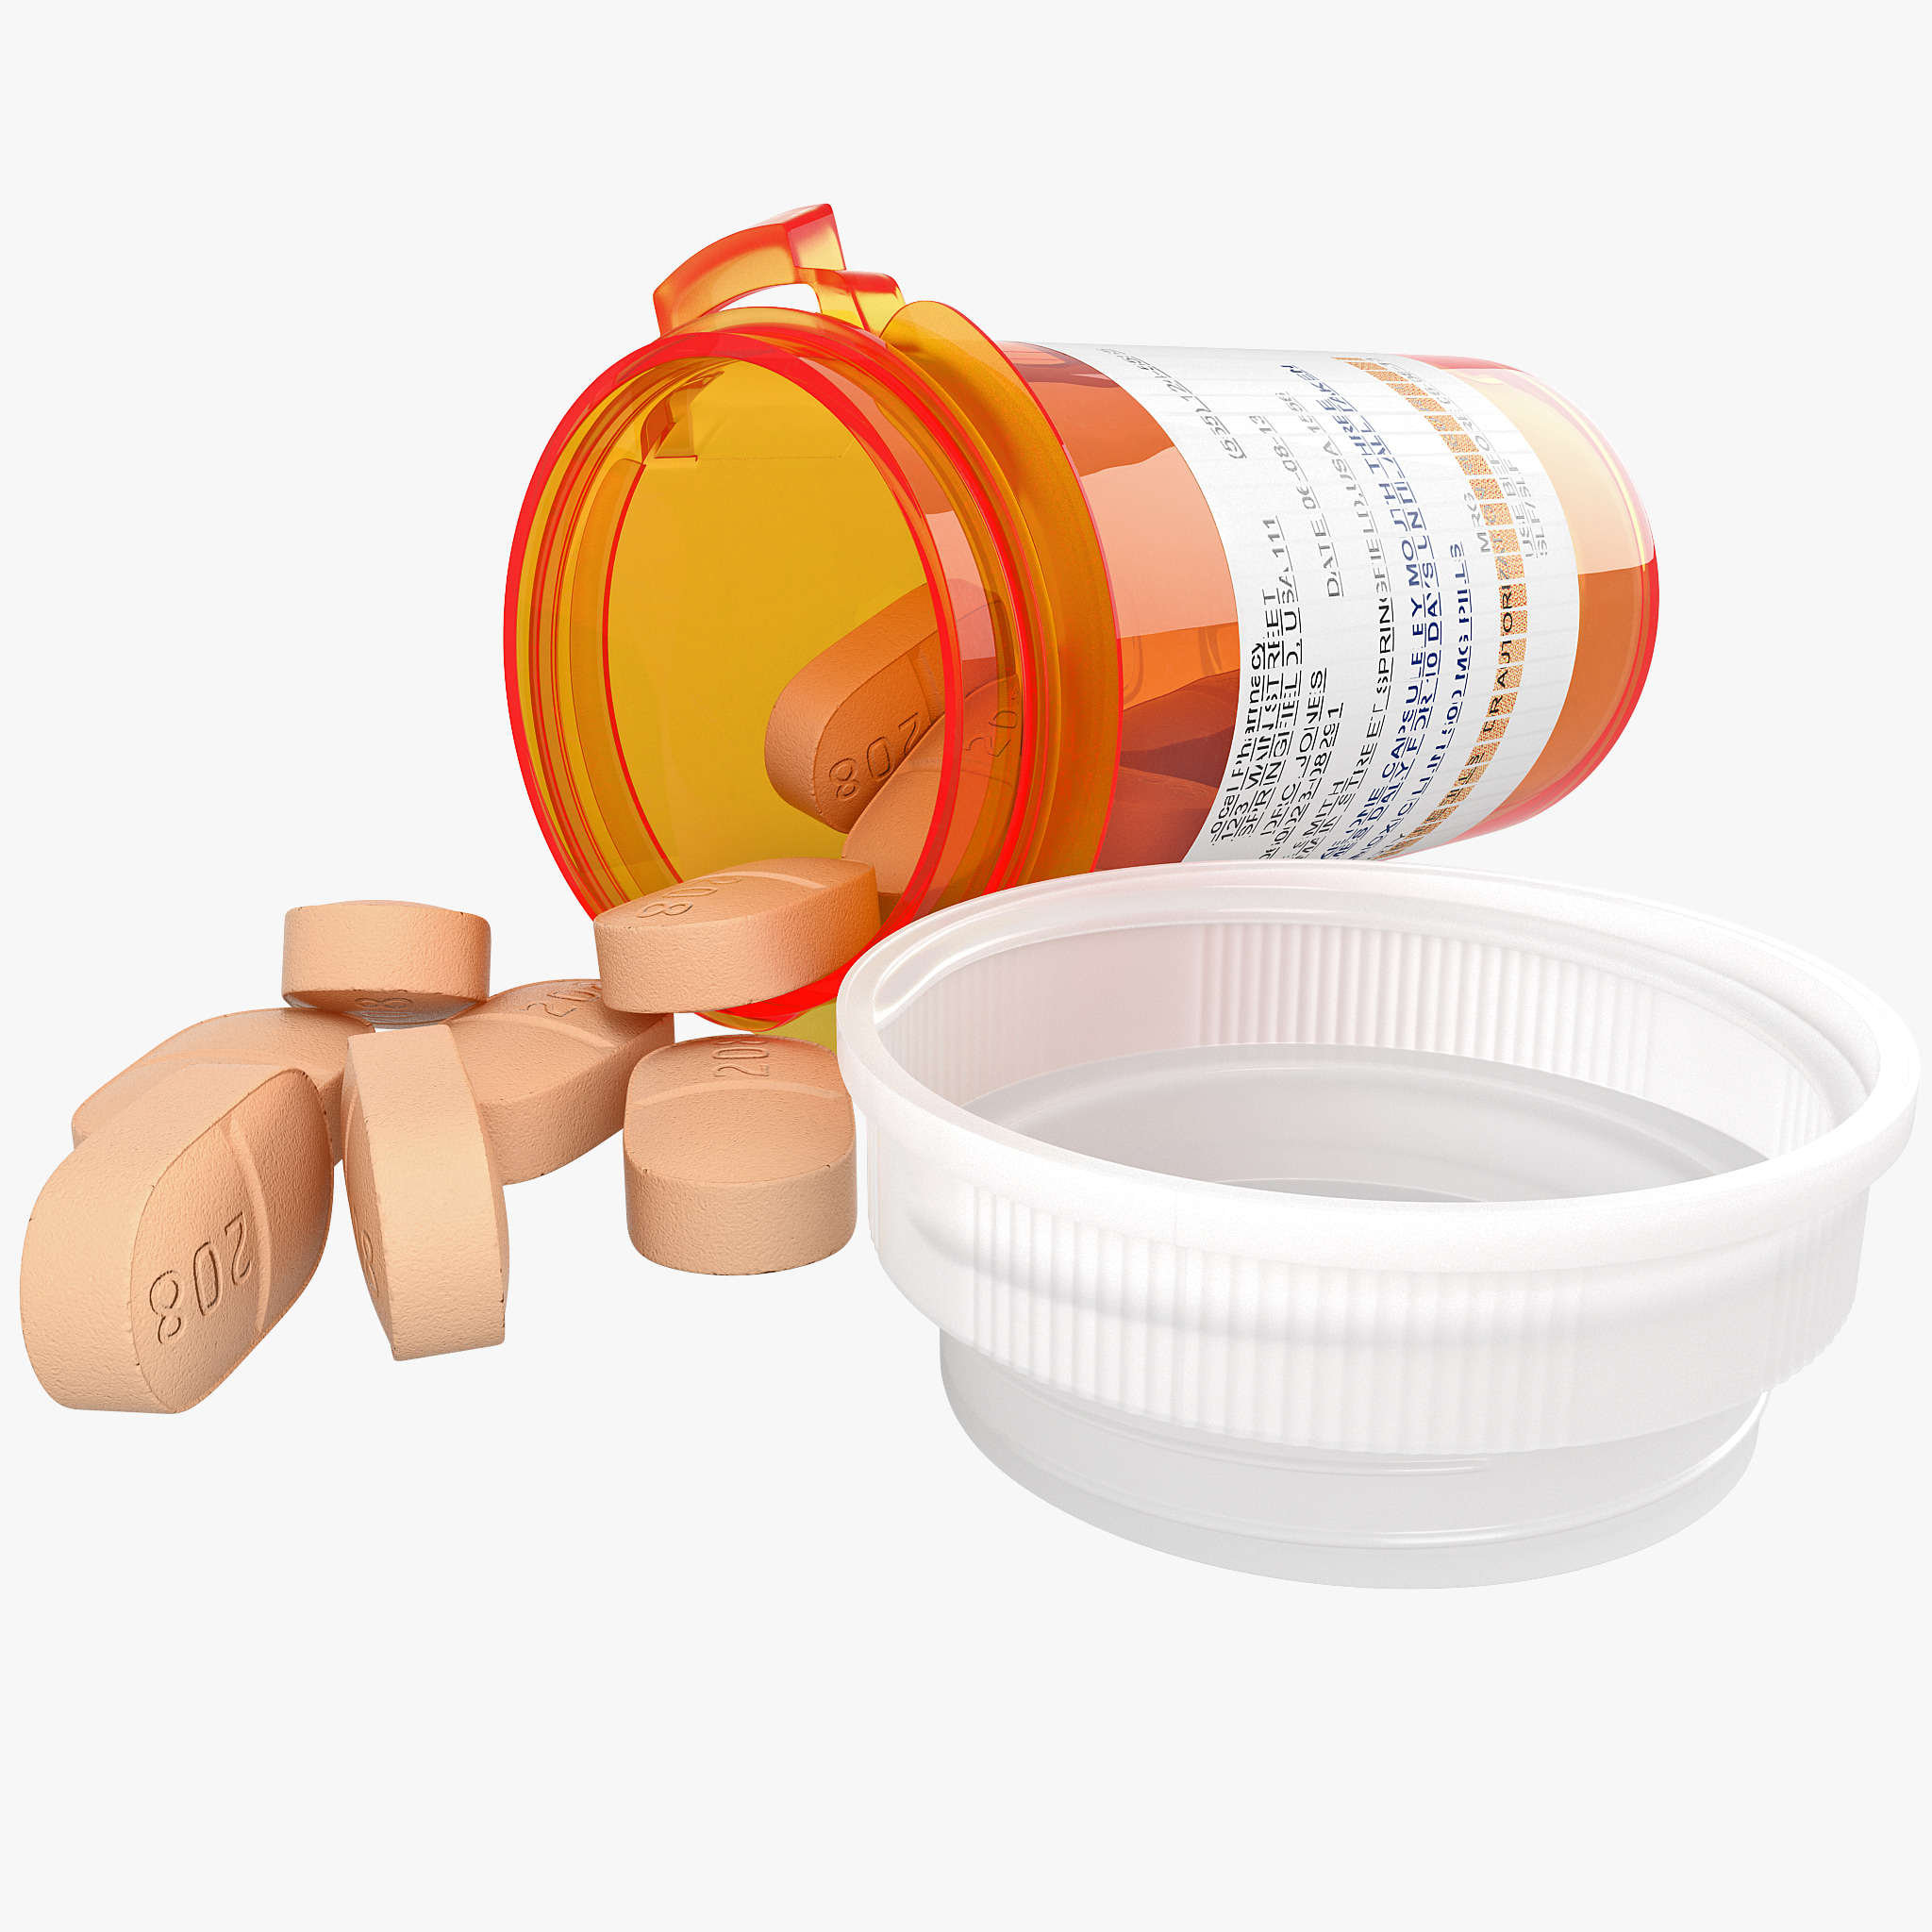 Pill Bottle and Pills_1.jpg